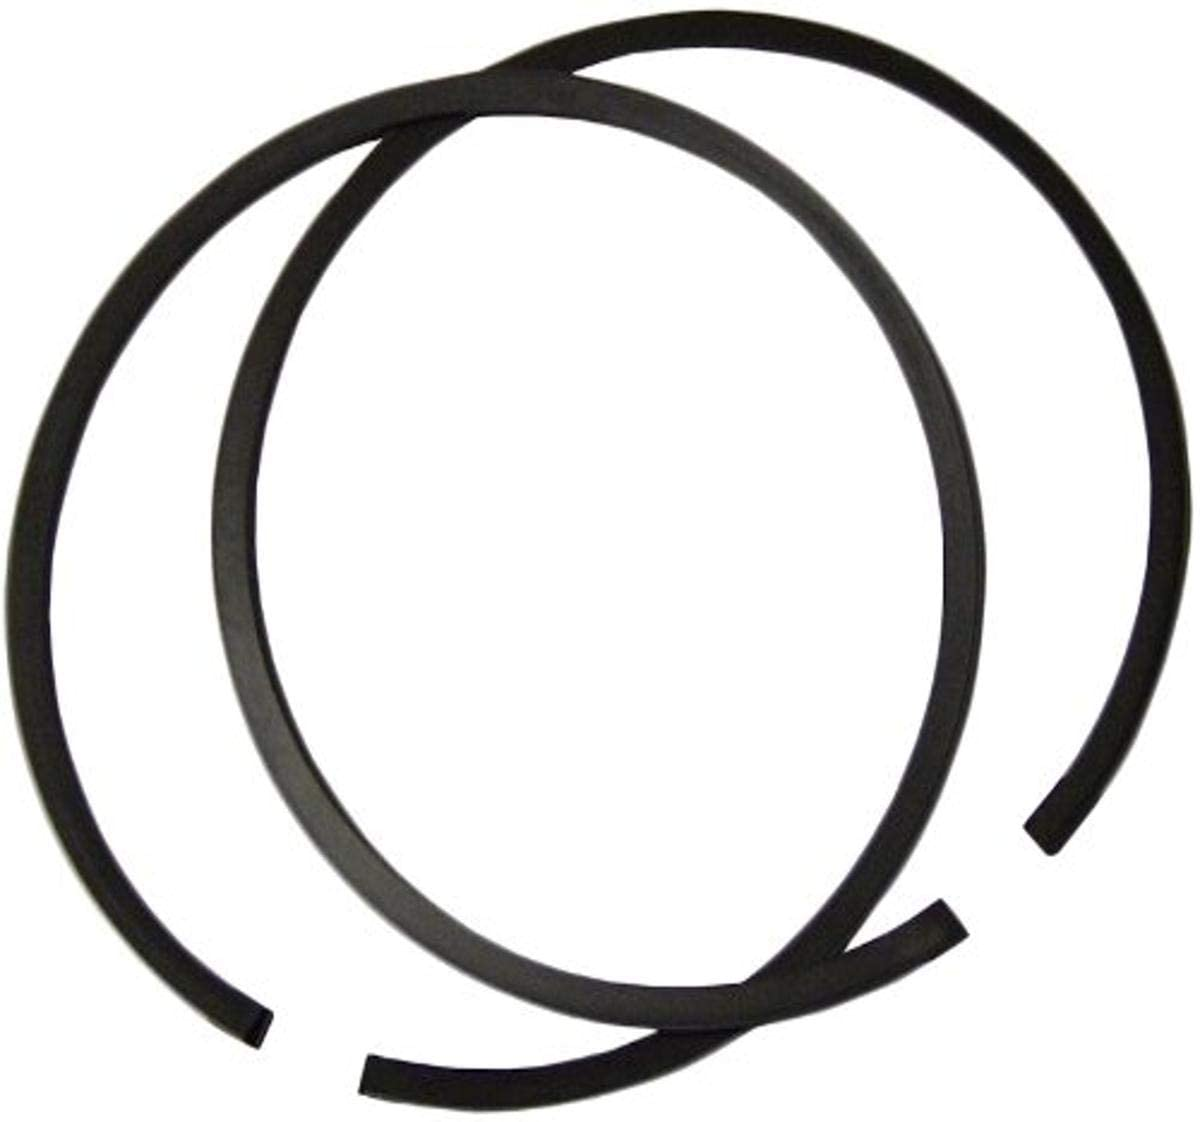 Wiseco (3150KD) Replacement Ring Set